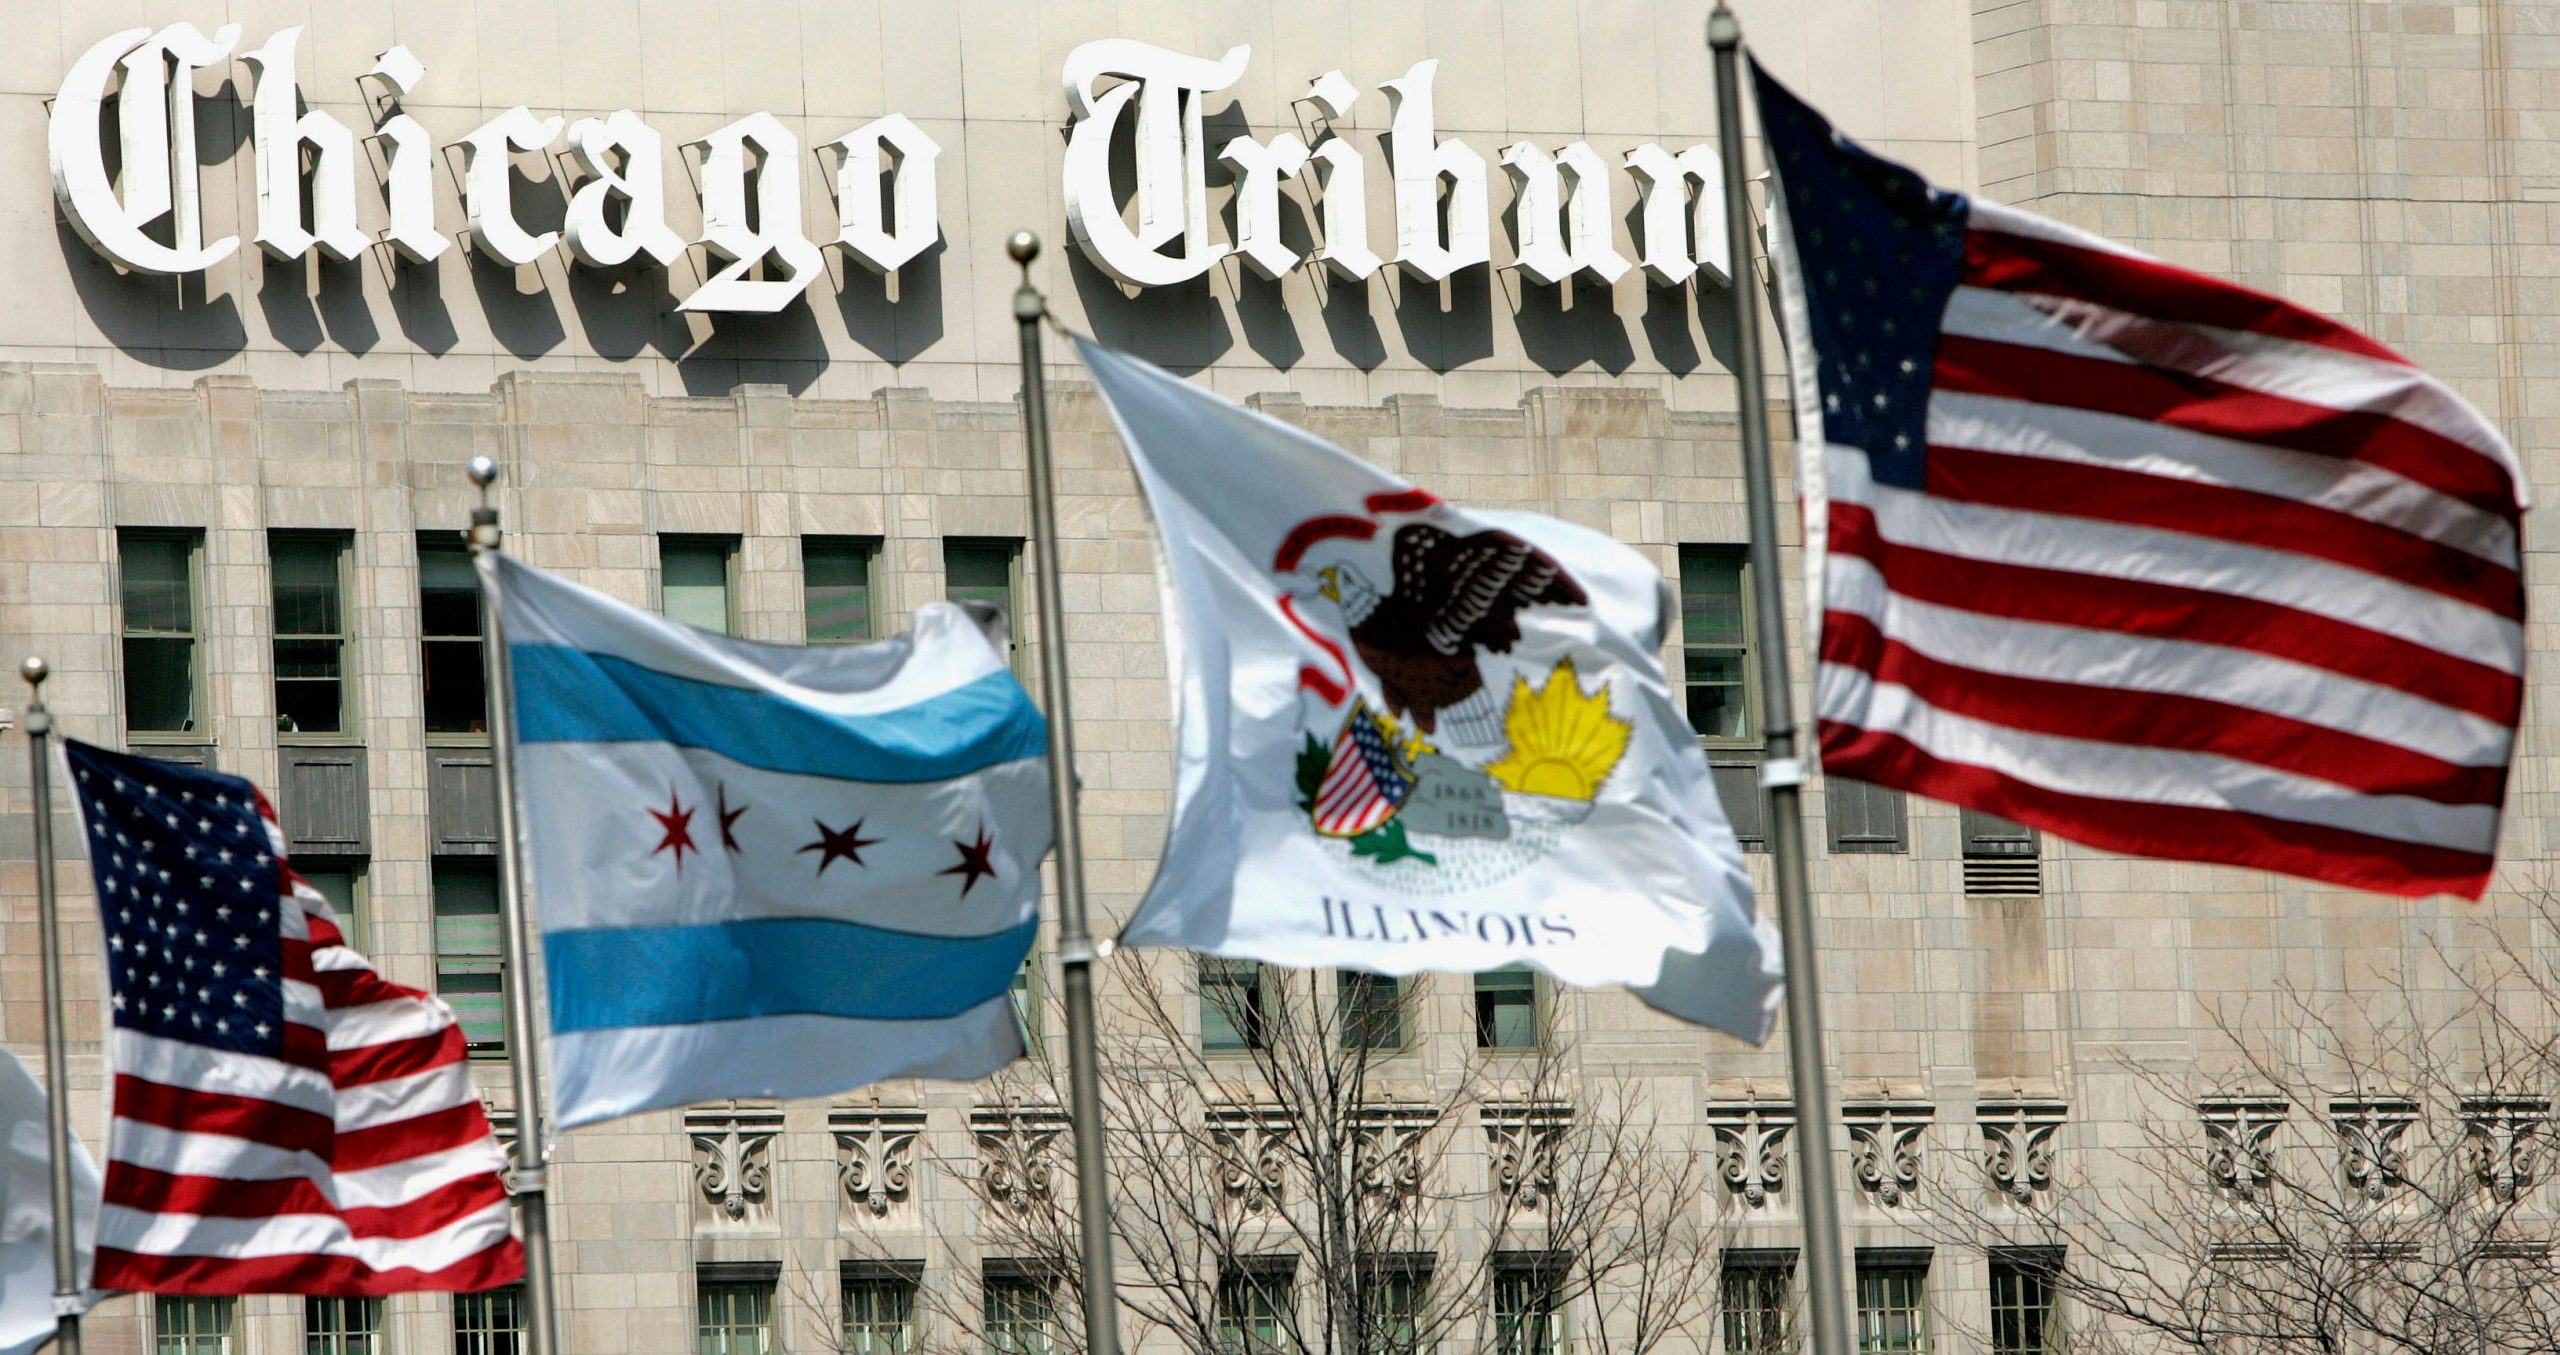 Tribune investors approve hedge fund takeover, likely shifting control of Chicago Tribune